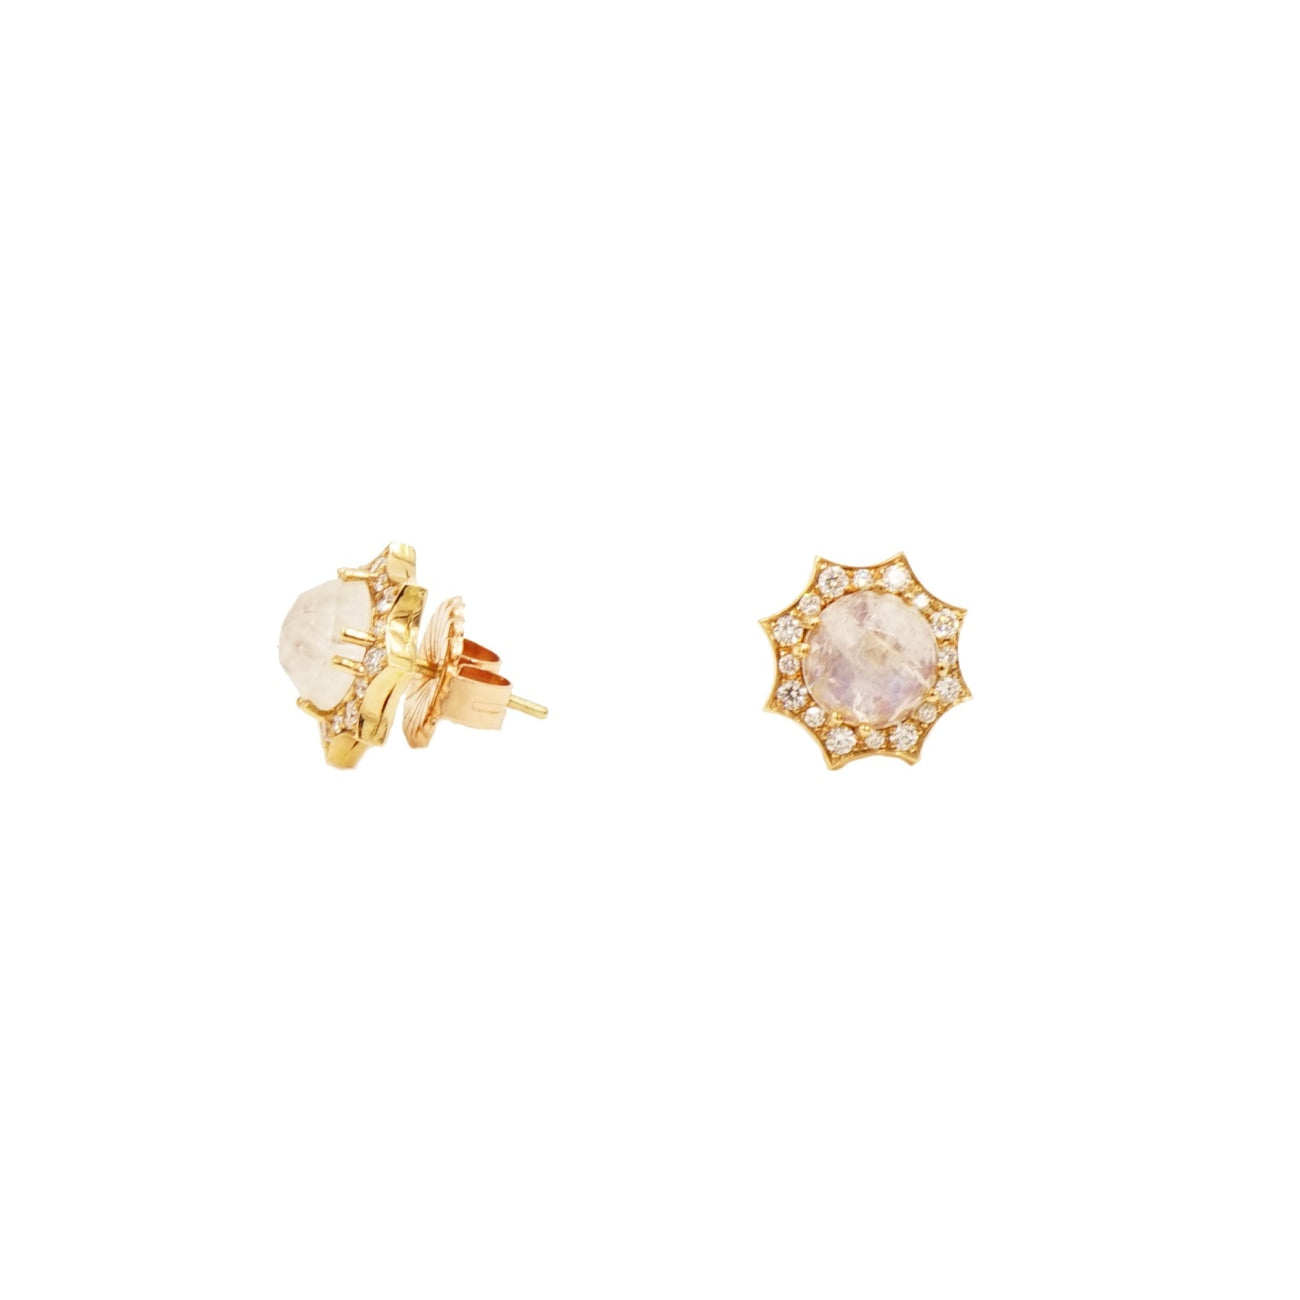 Lauren K Jewelry - Moonstone & Diamond Rose Gold Stud Earrings | Manfredi Jewels